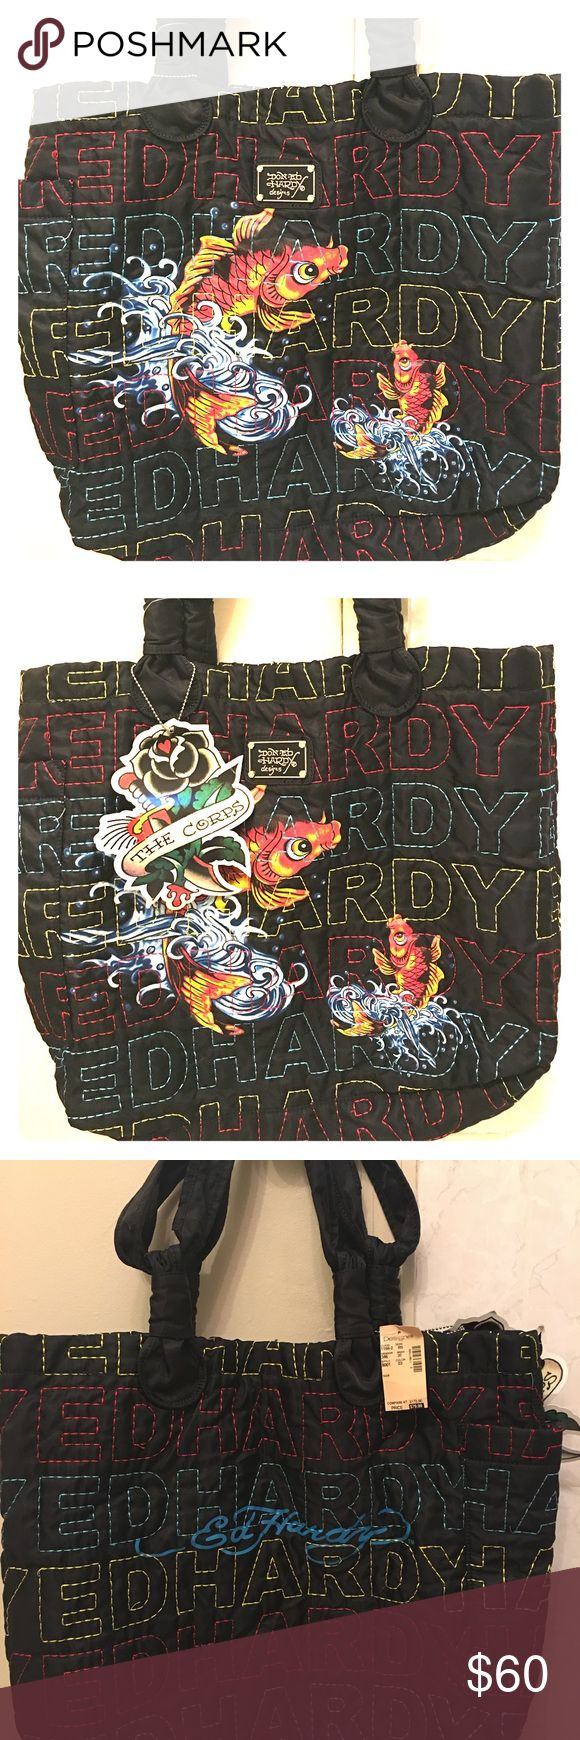 DON ED HARDY BEACH TOTE BIG DON ED HARDY DESIGNS BEACH TOTE . VIBRANT COLORS AND STITCHING. L20, H16, WIDTH OF BOTTOM -5, HANDLE DROP HEIGHT-9 INCHES, MAGNETIC SNAP CLOSURE, 1 OUTSIDE POCKET &INTERIOR -2 SMALL , &1 ZIPPERED POCKETS. THIS IS ONE OF A KIND ! Don Ed Hardy Bags Totes